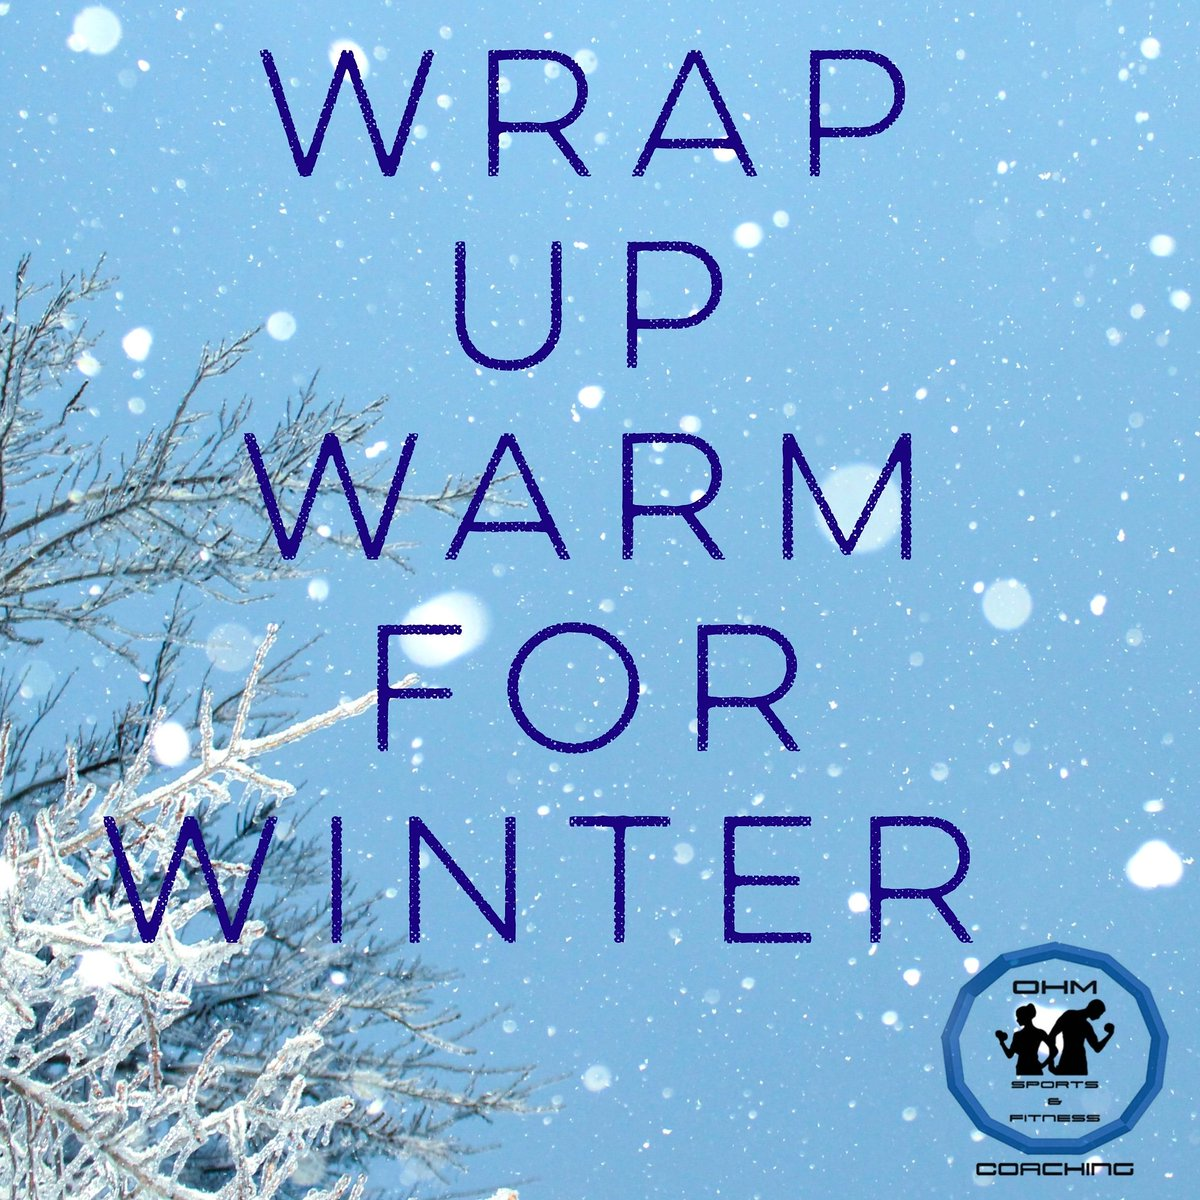 Wrap up warm and start getting into the festive spirit 🎅   This is the perfect time of year for giving so let's carry out random acts of kindness😊  #positivevibes #festiveseason #coldwinter #wrapupwarm #randomactsofkindness #bekind #smiles #happiness #spreadlove https://t.co/pGCi65BG38